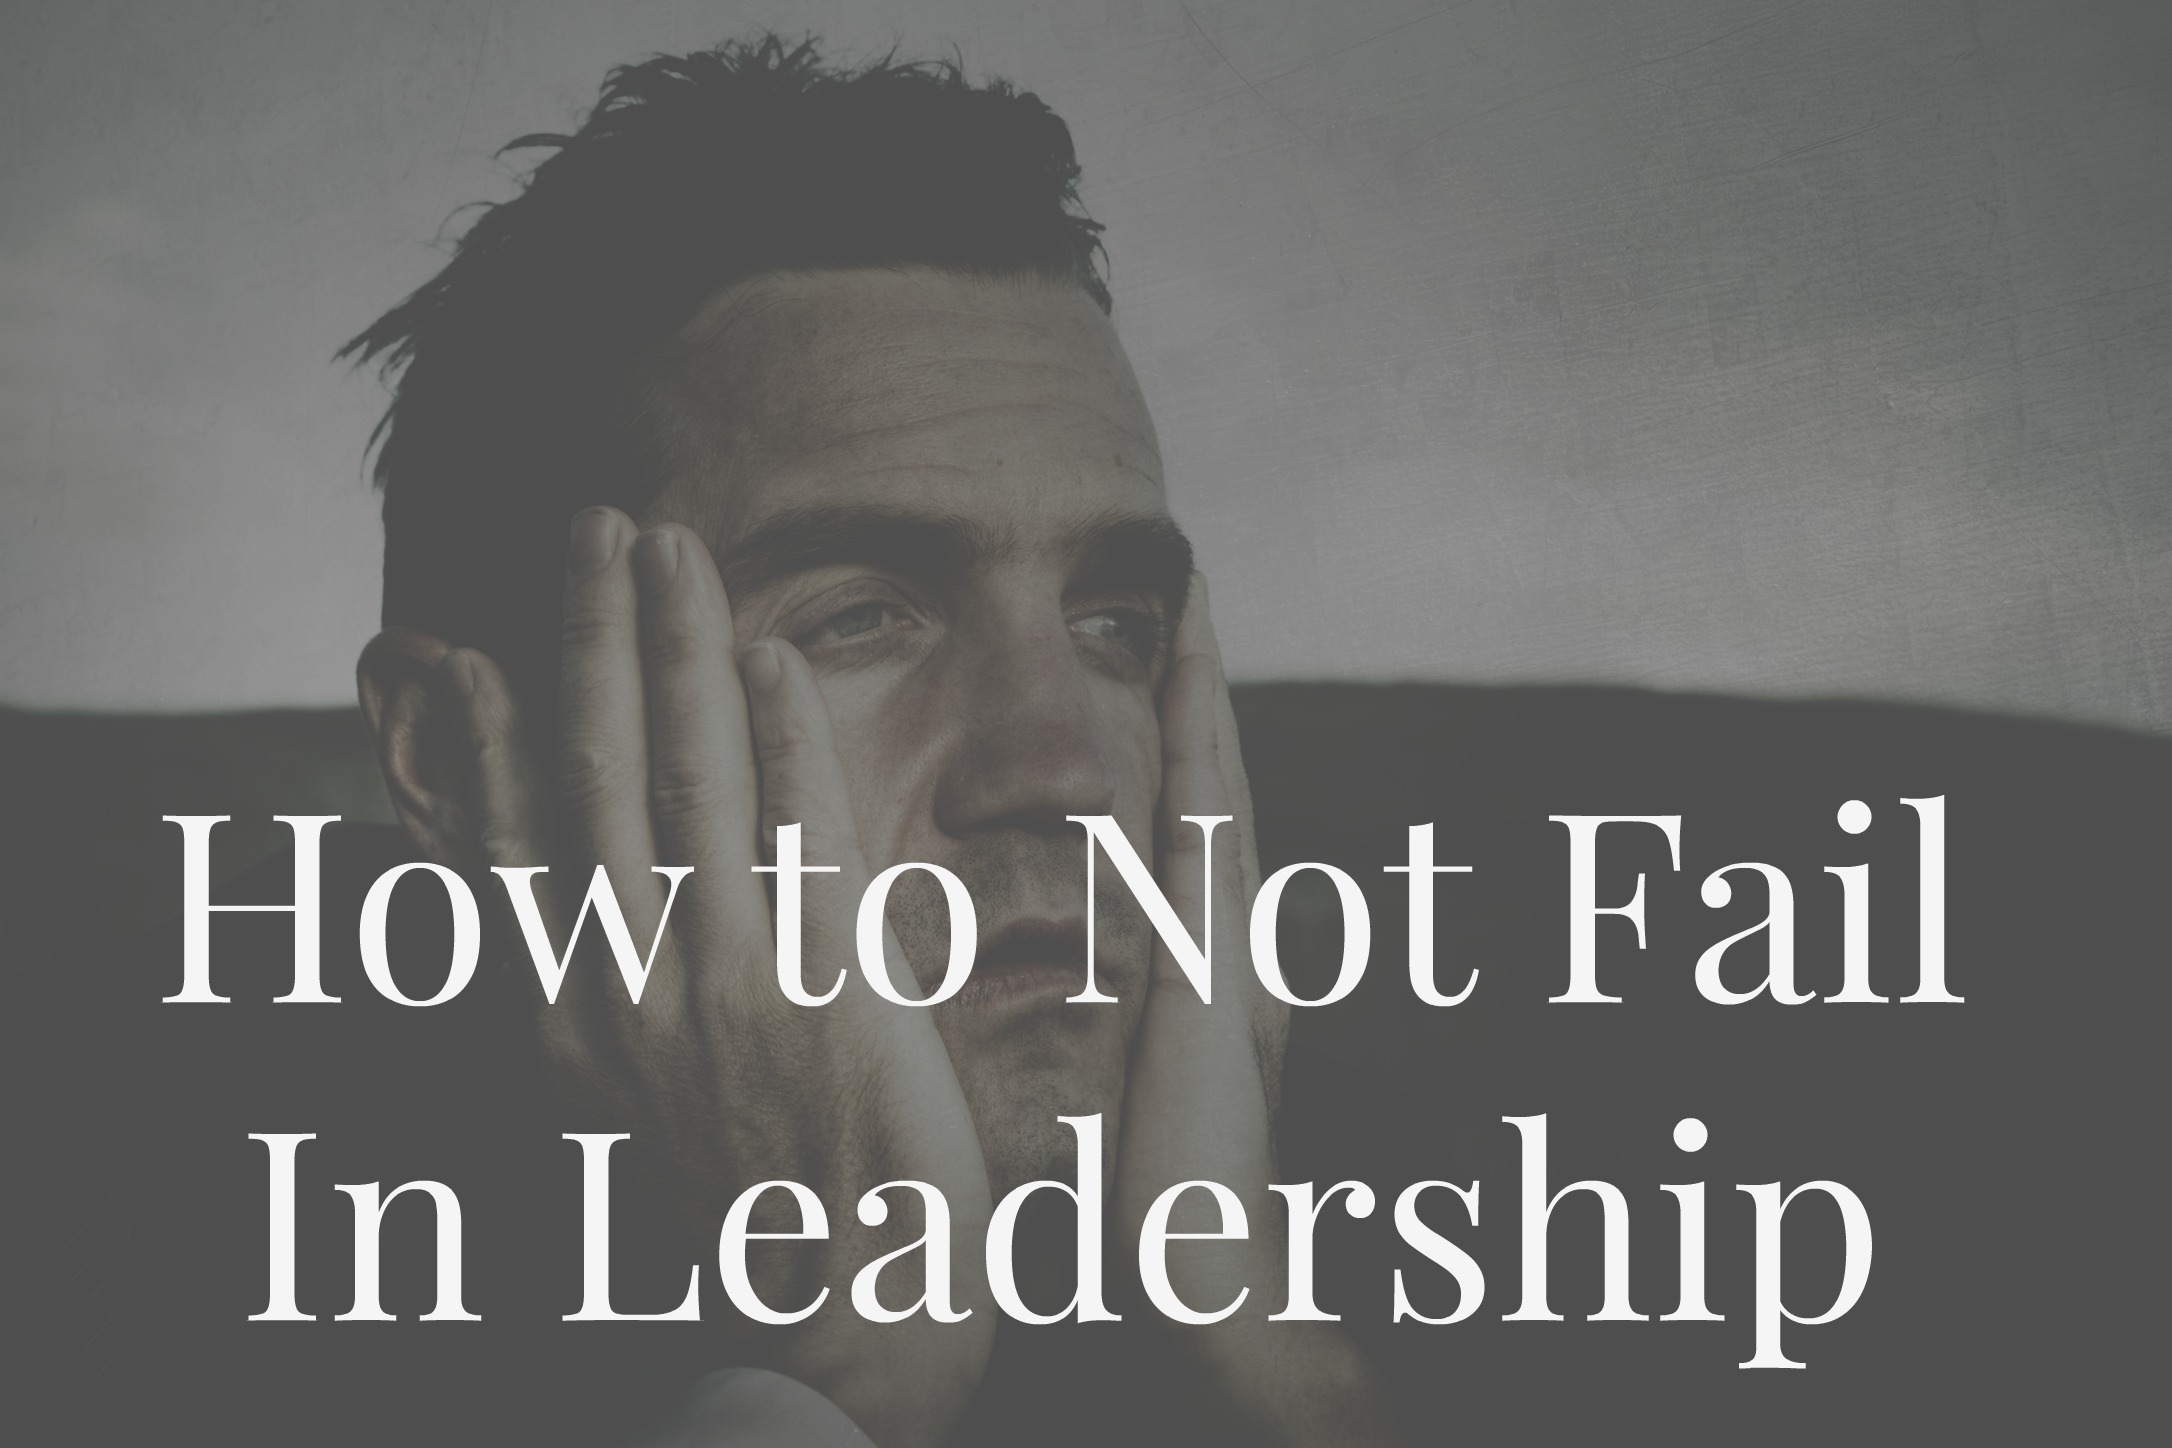 How to Not Fail in Leadership